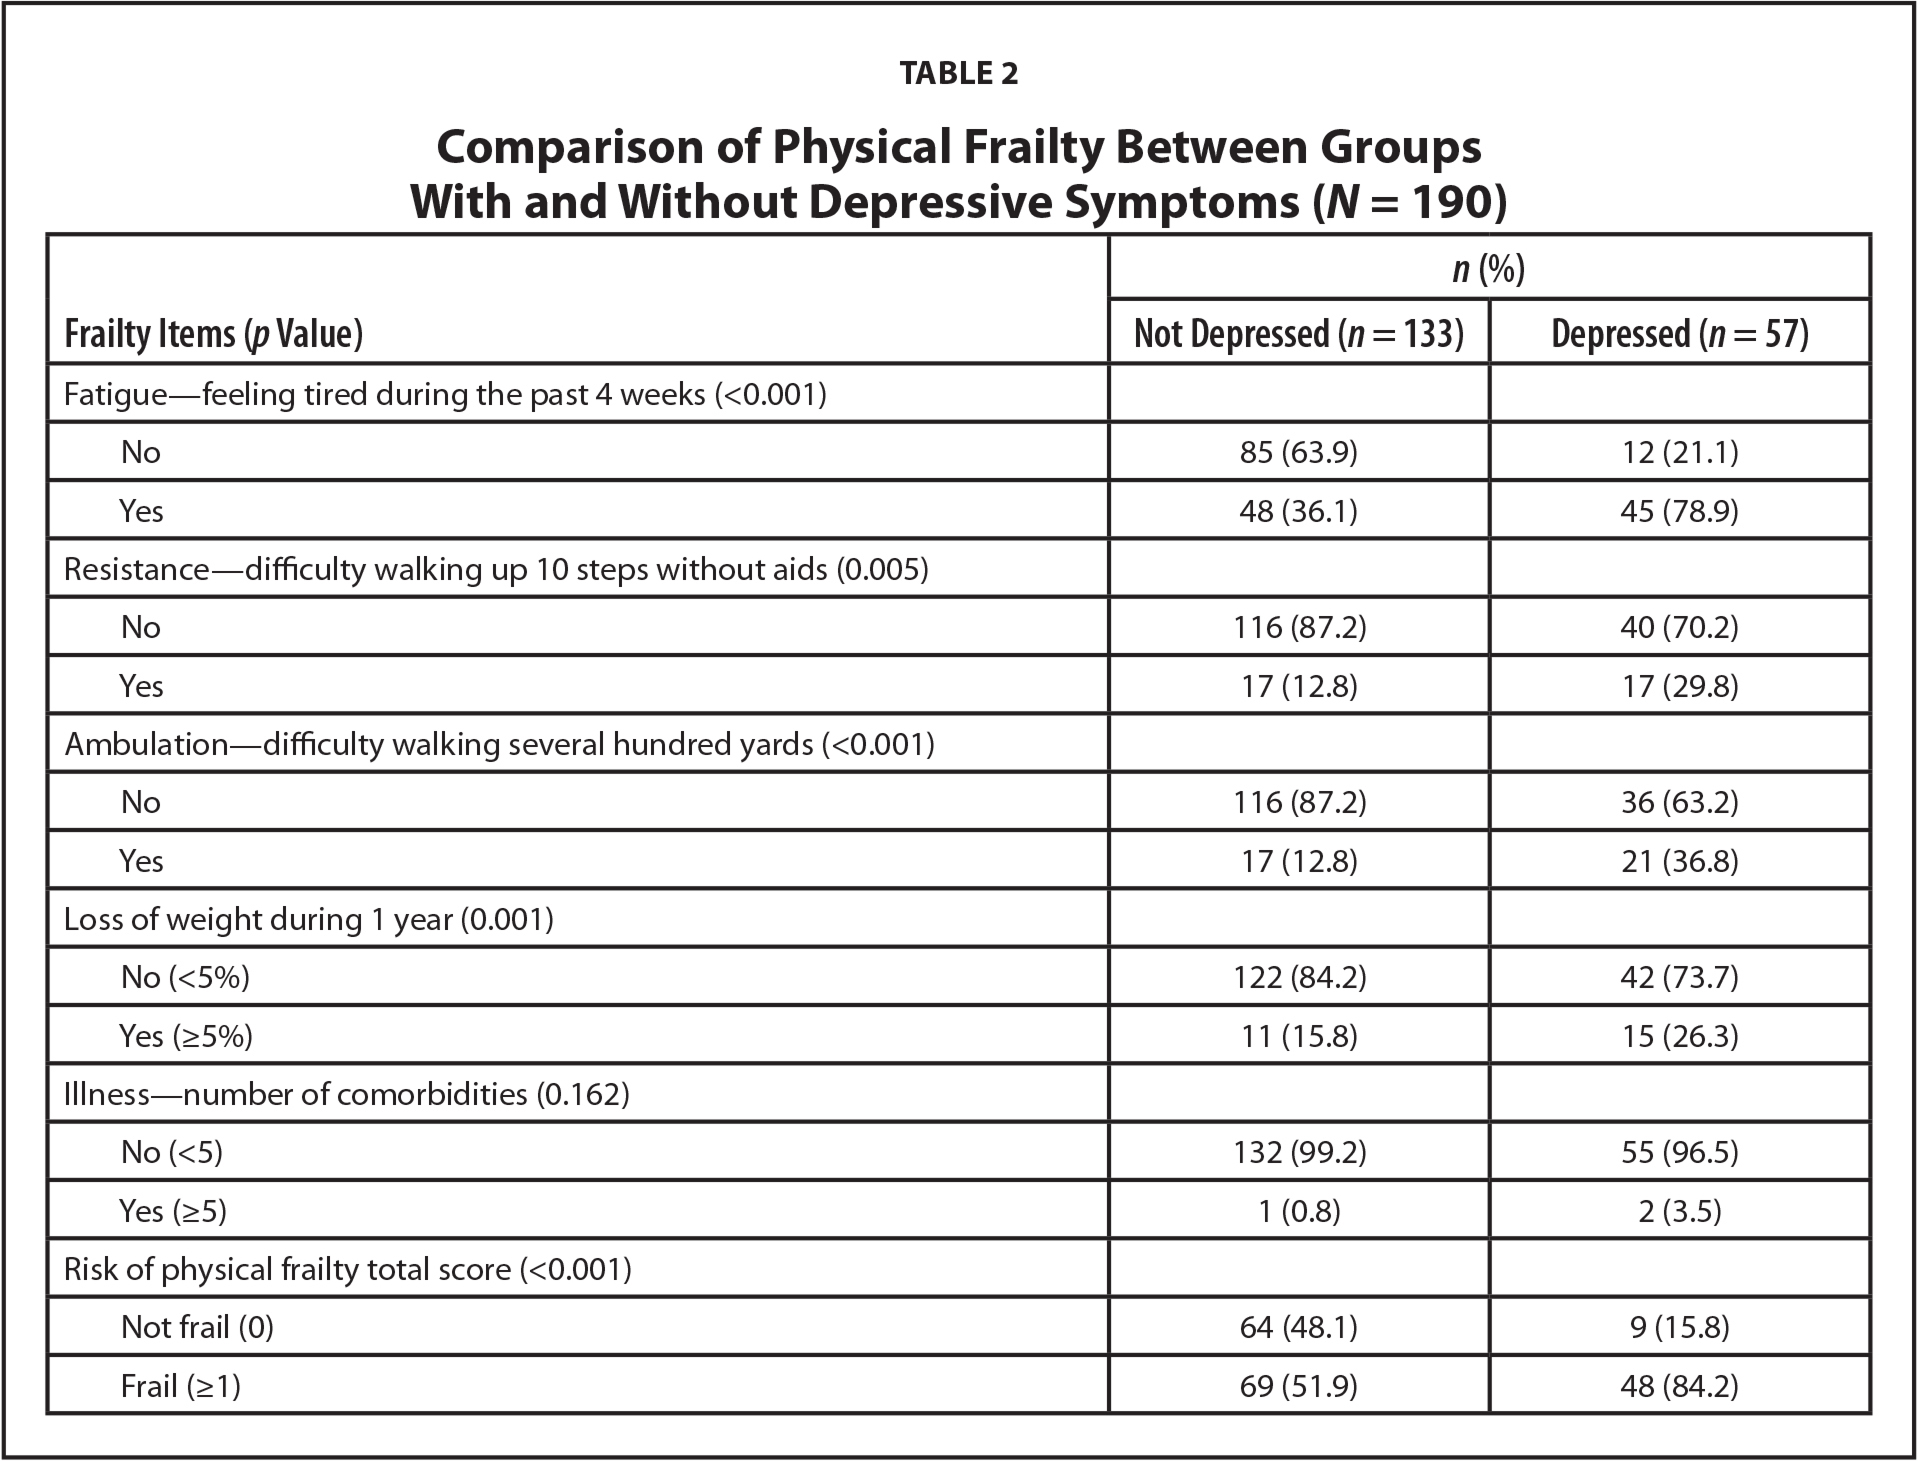 Comparison of Physical Frailty Between Groups With and Without Depressive Symptoms (N = 190)